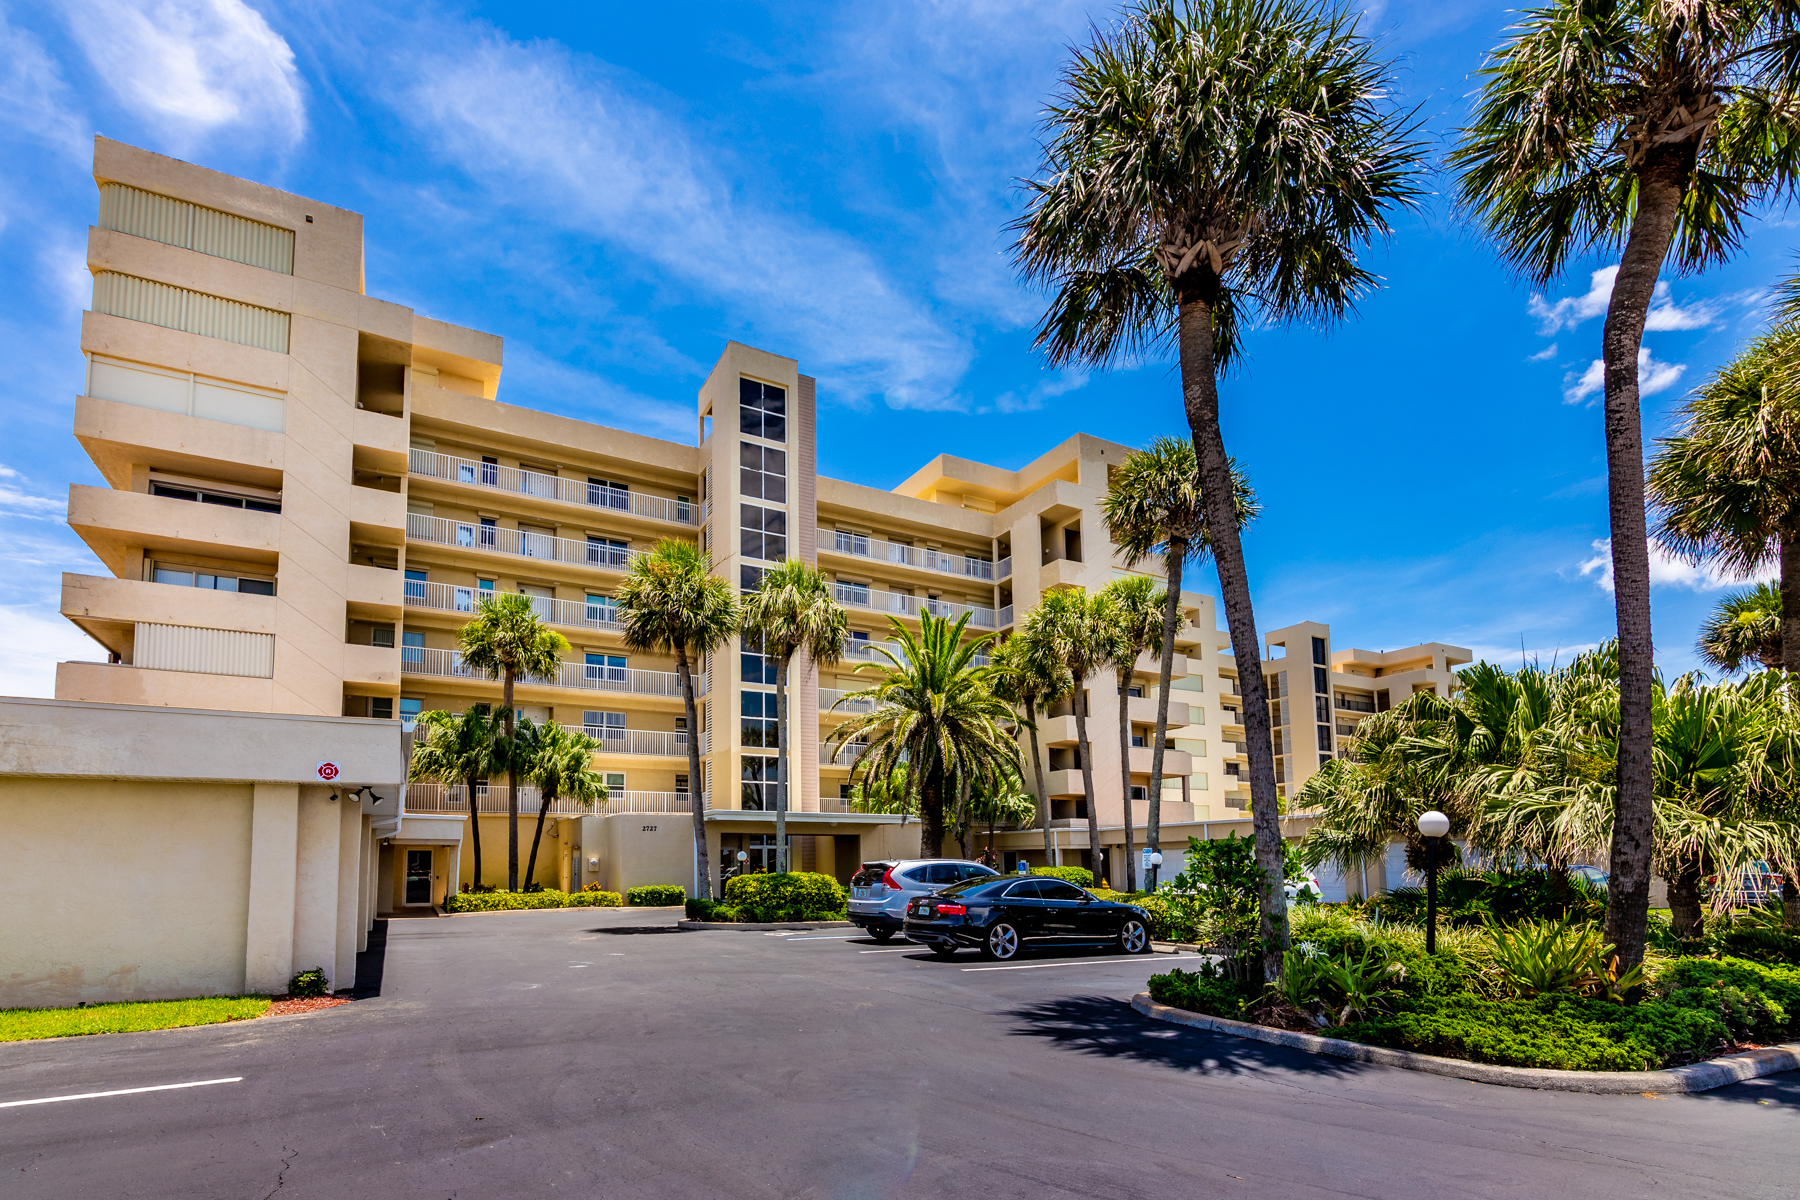 Property for Sale at Ocean Sands North 2727 Highway A1A Unit 303 Indialantic, Florida 32903 United States